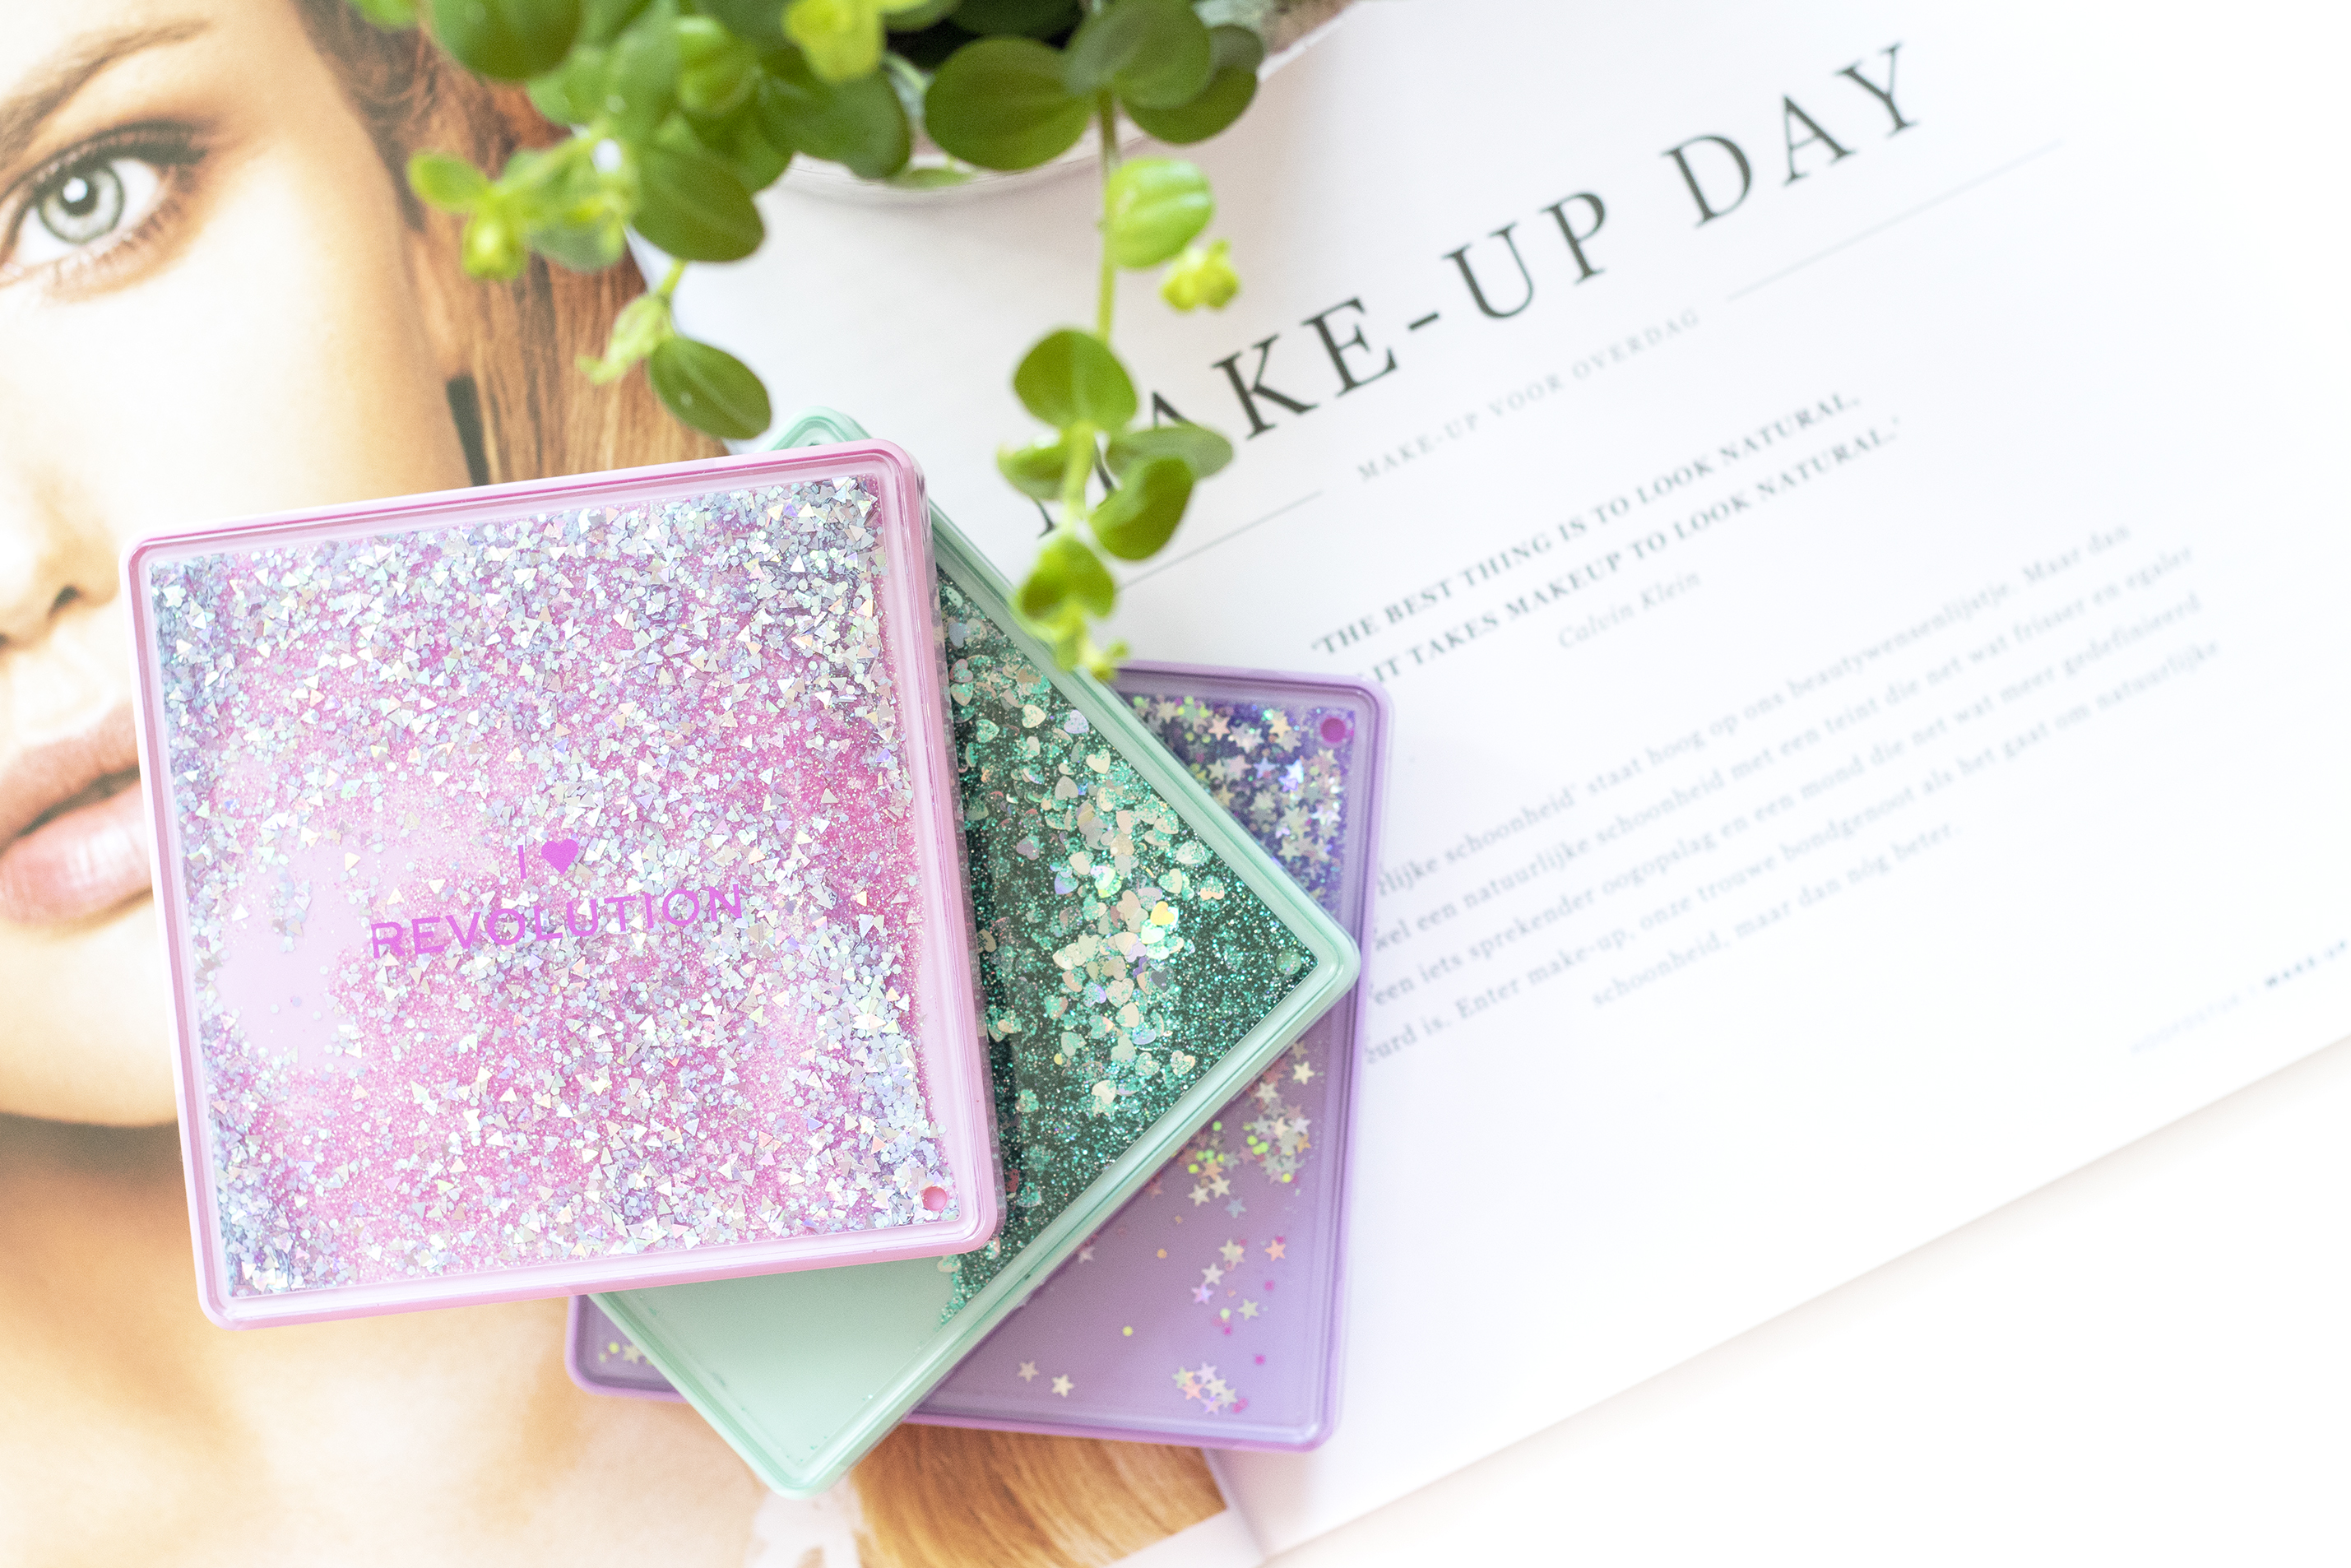 glitter palettes review i heart revolution